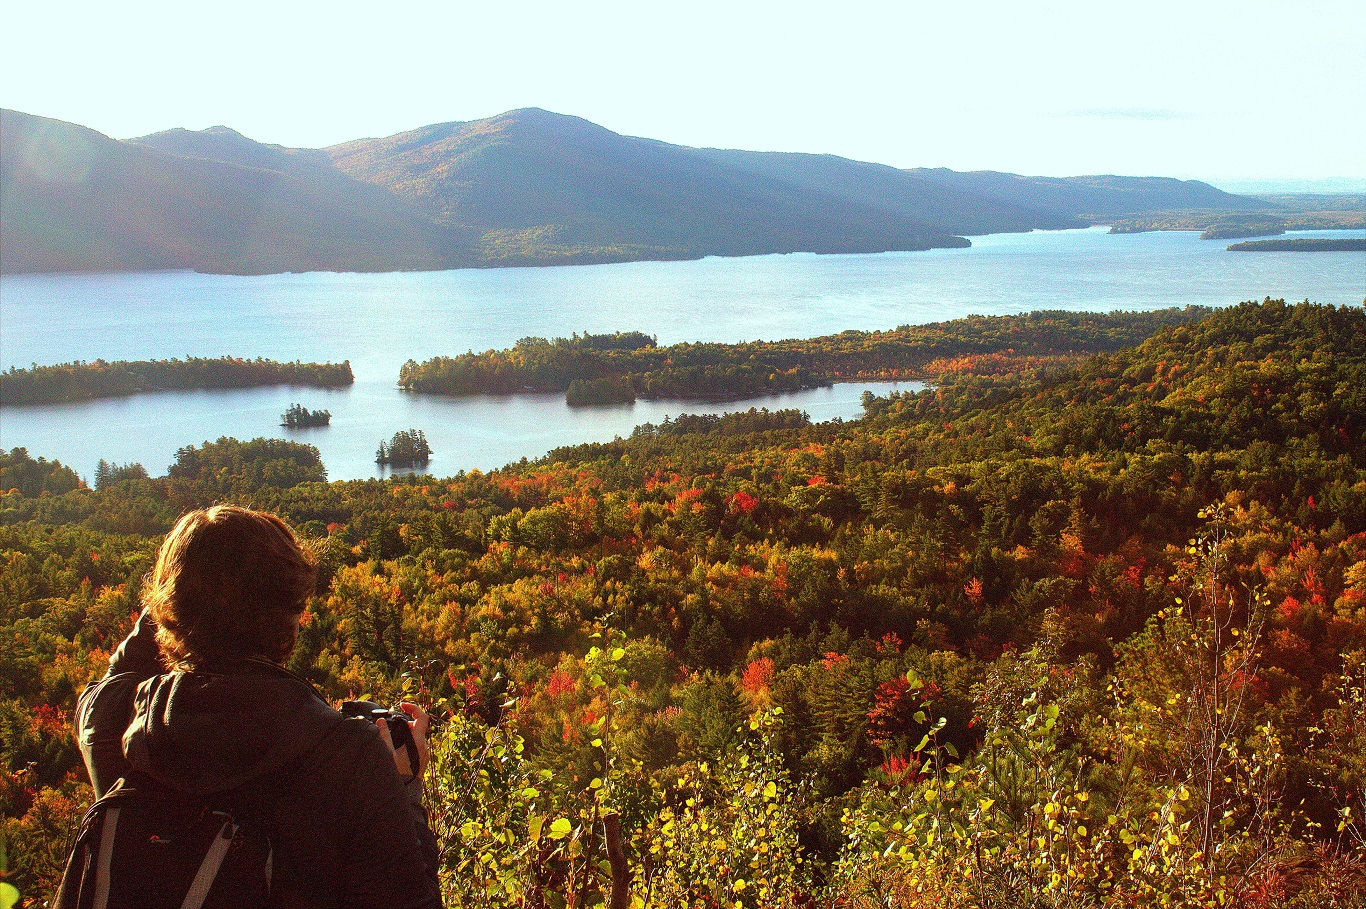 The Pinnacle summit overlooking fall foliage and Lake George